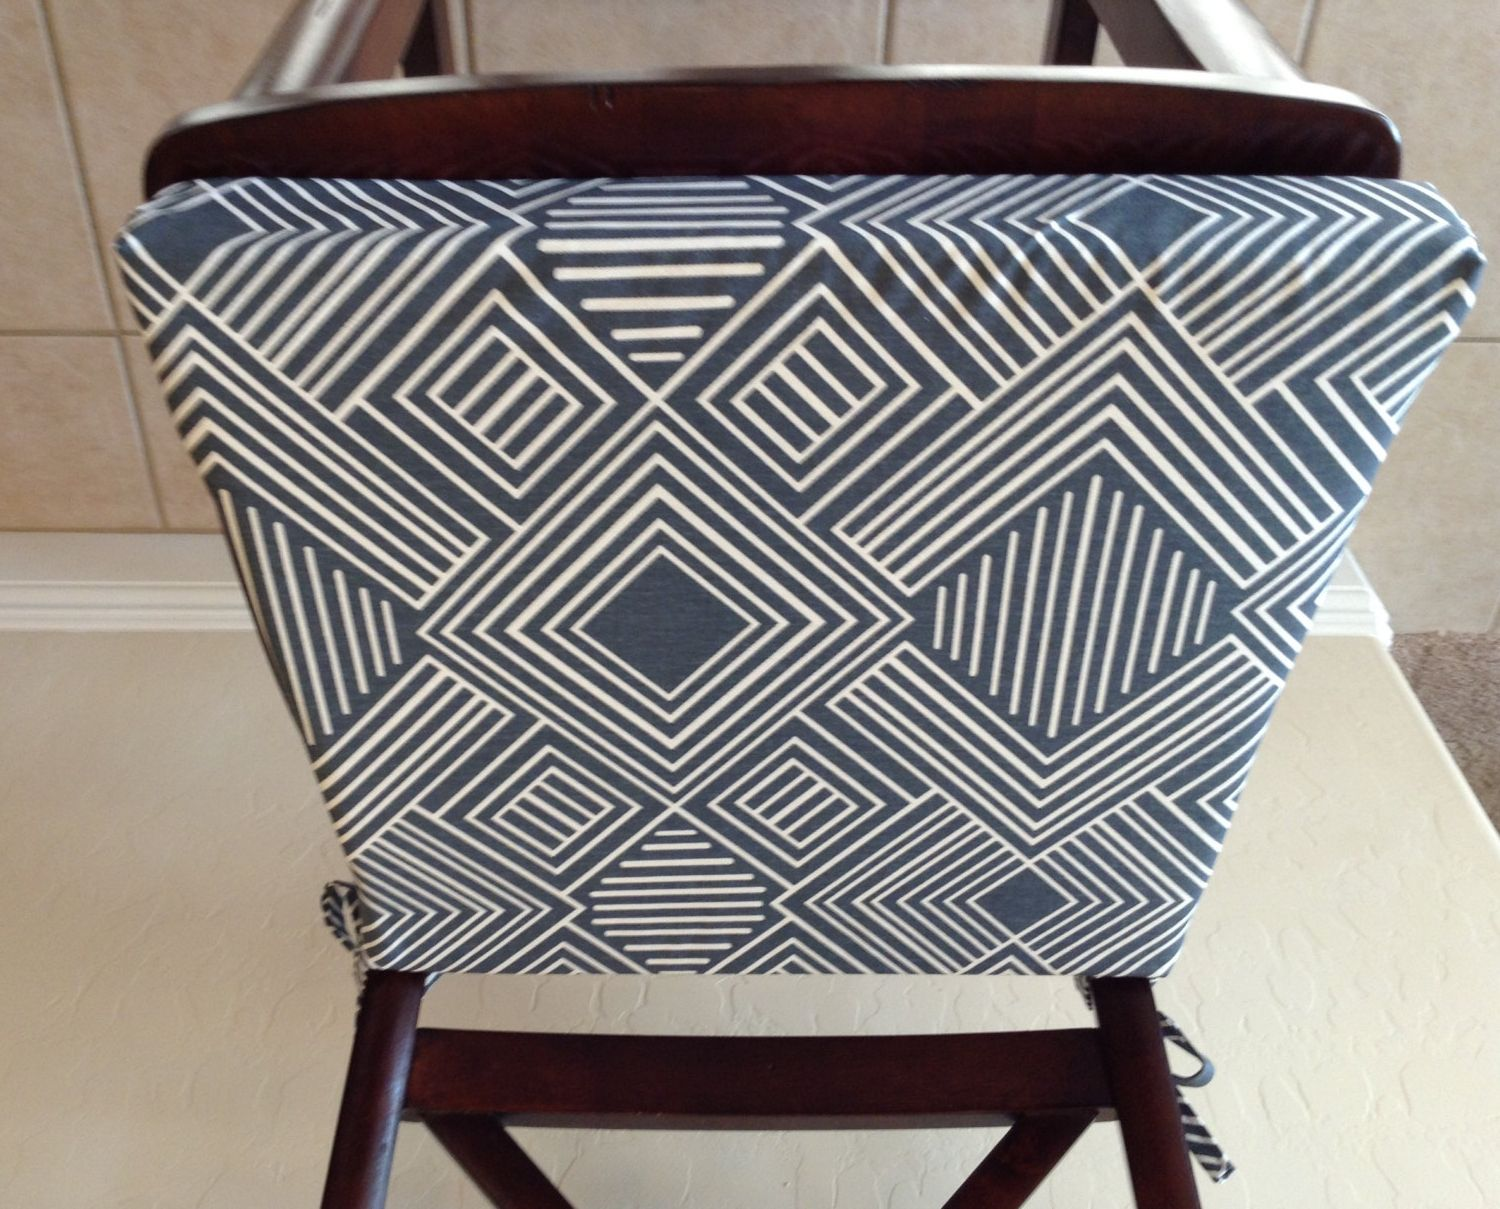 kitchen chair seat cushions Geometric print seat cushion cover kitchen chair pad gunmetal blue gray on cream cotton fabric counter bar stool seat pad cover washable